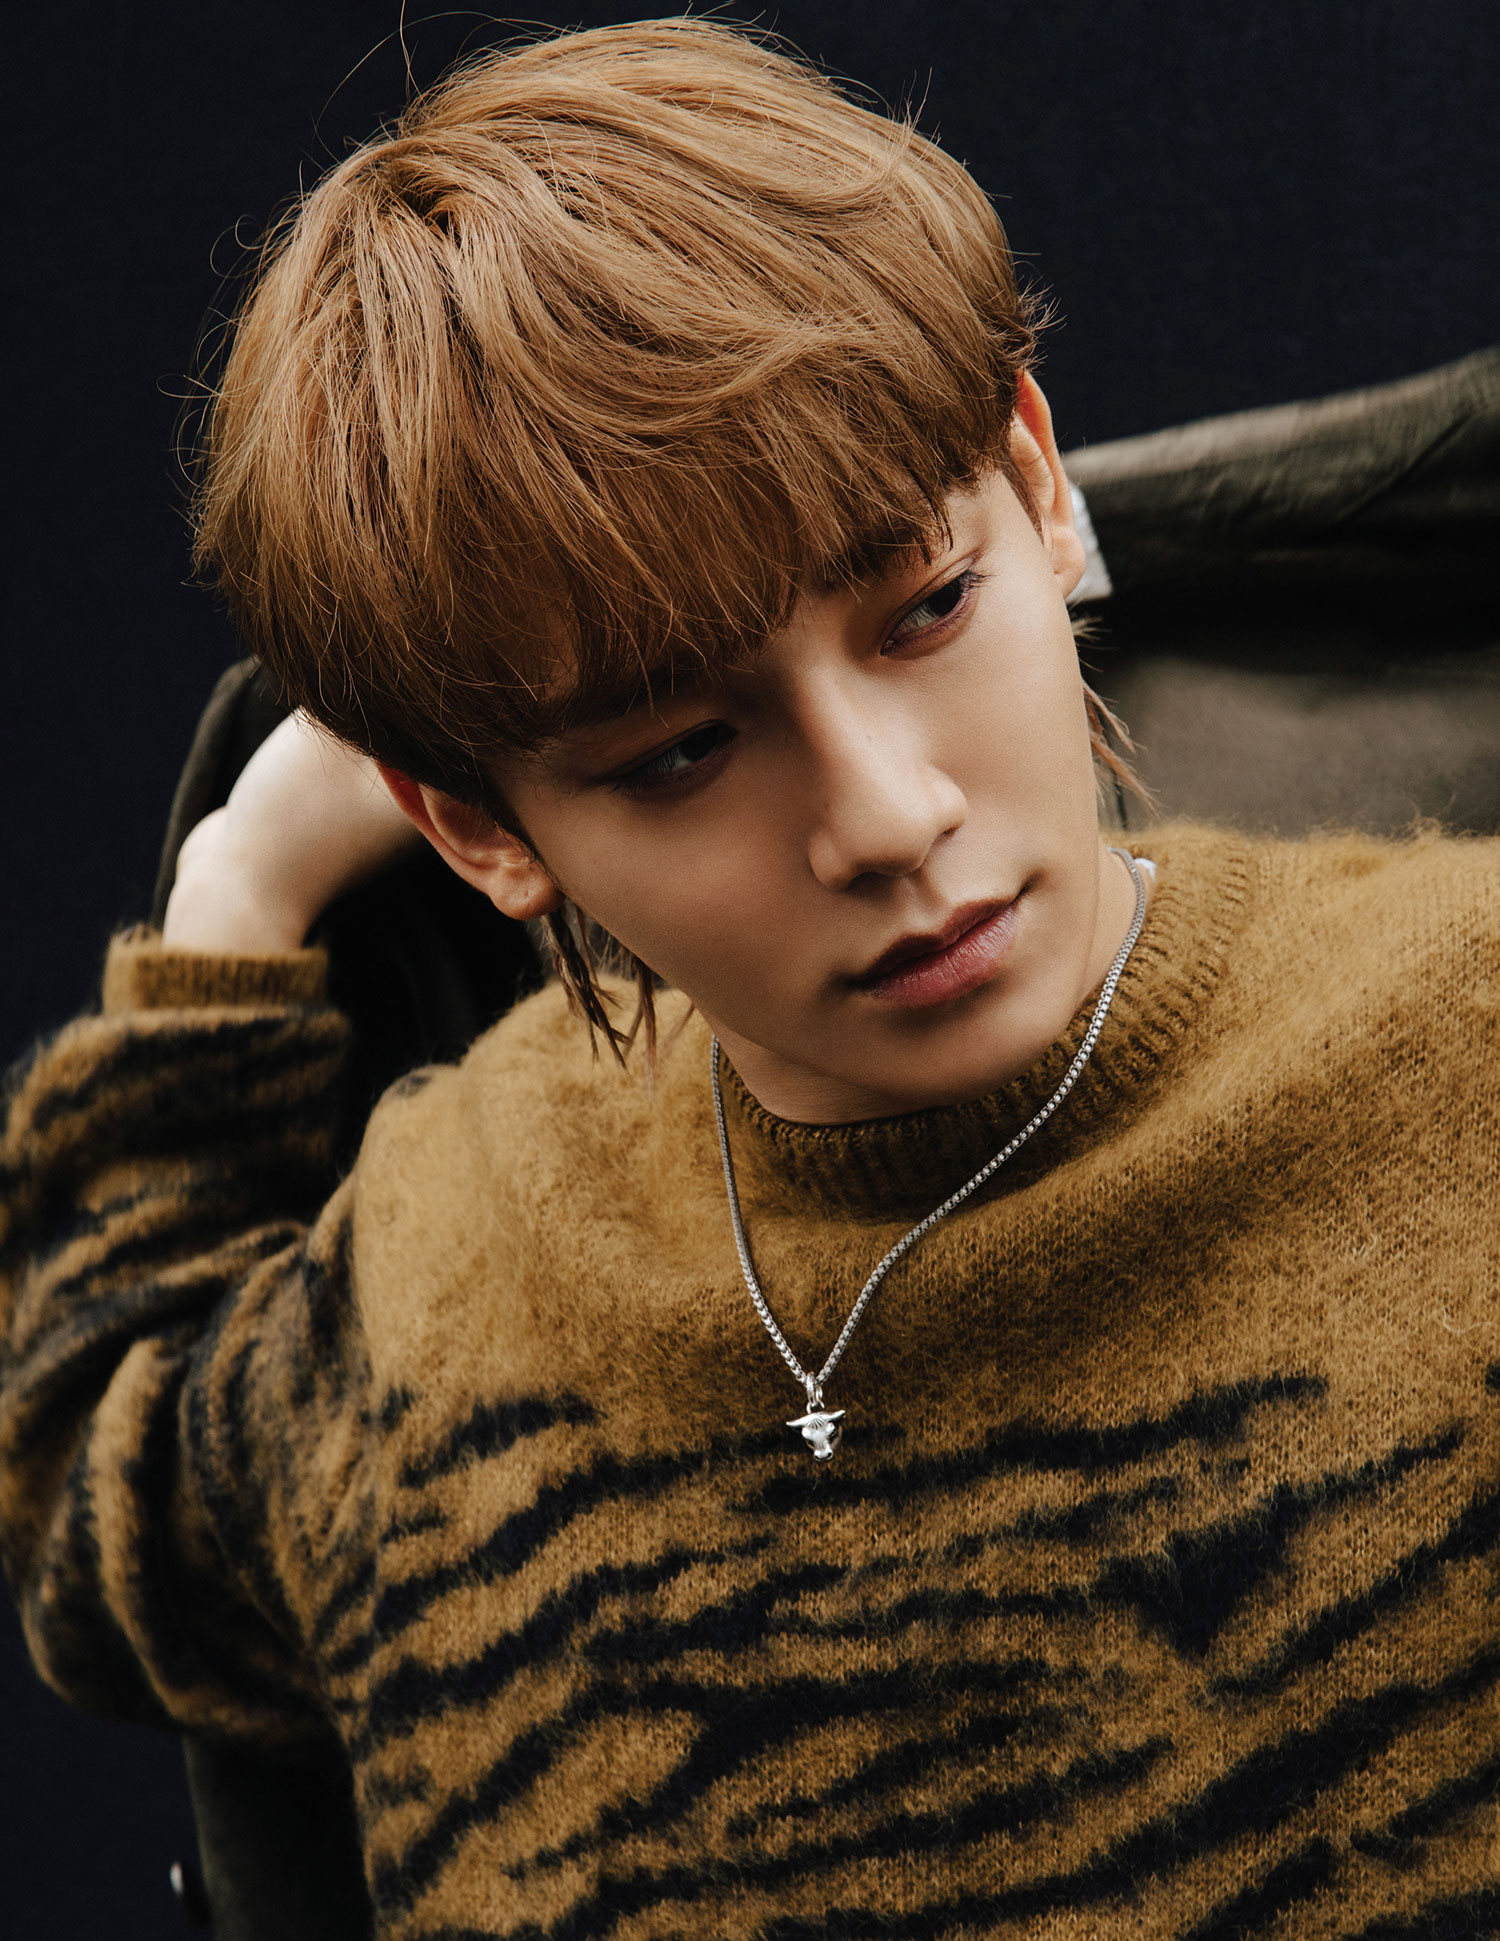 Image Chen Don T Mess Up My Tempo 6 Png Exo Wiki Fandom